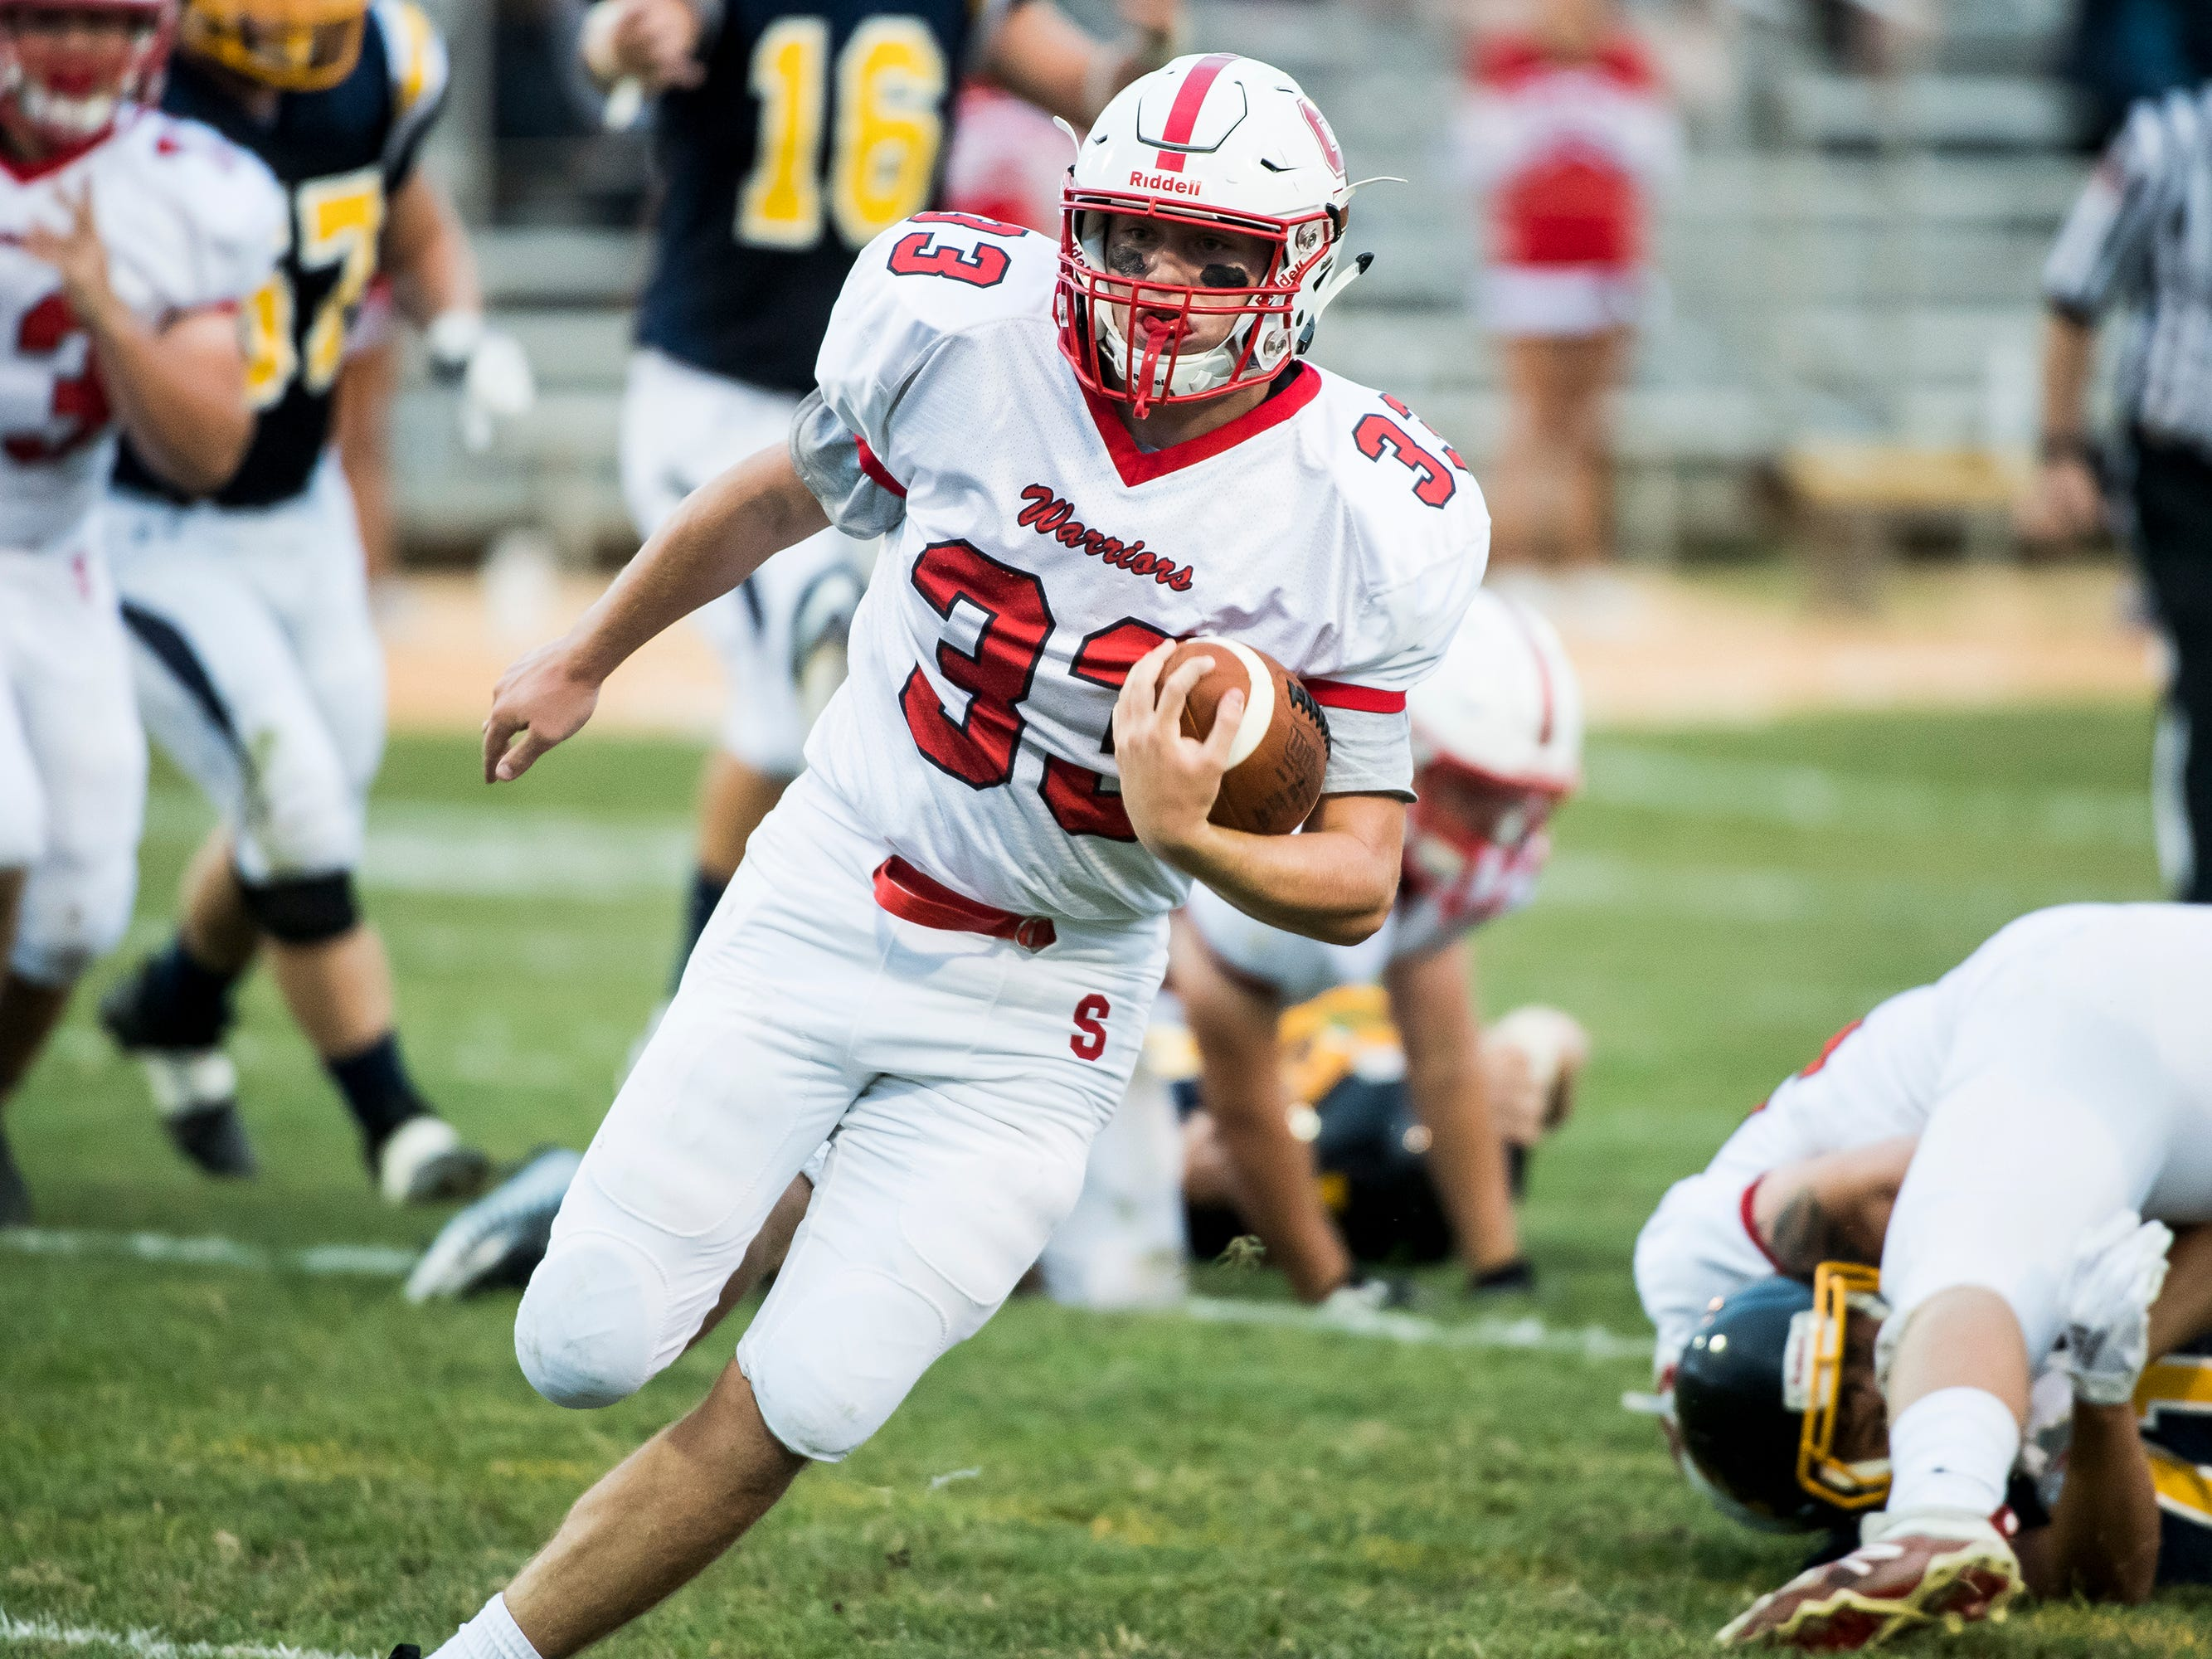 Susquehannock's Allen Clapp runs with the ball against Littlestown on Friday, August 31, 2018. The Bolts beat the Warriors 29-14.